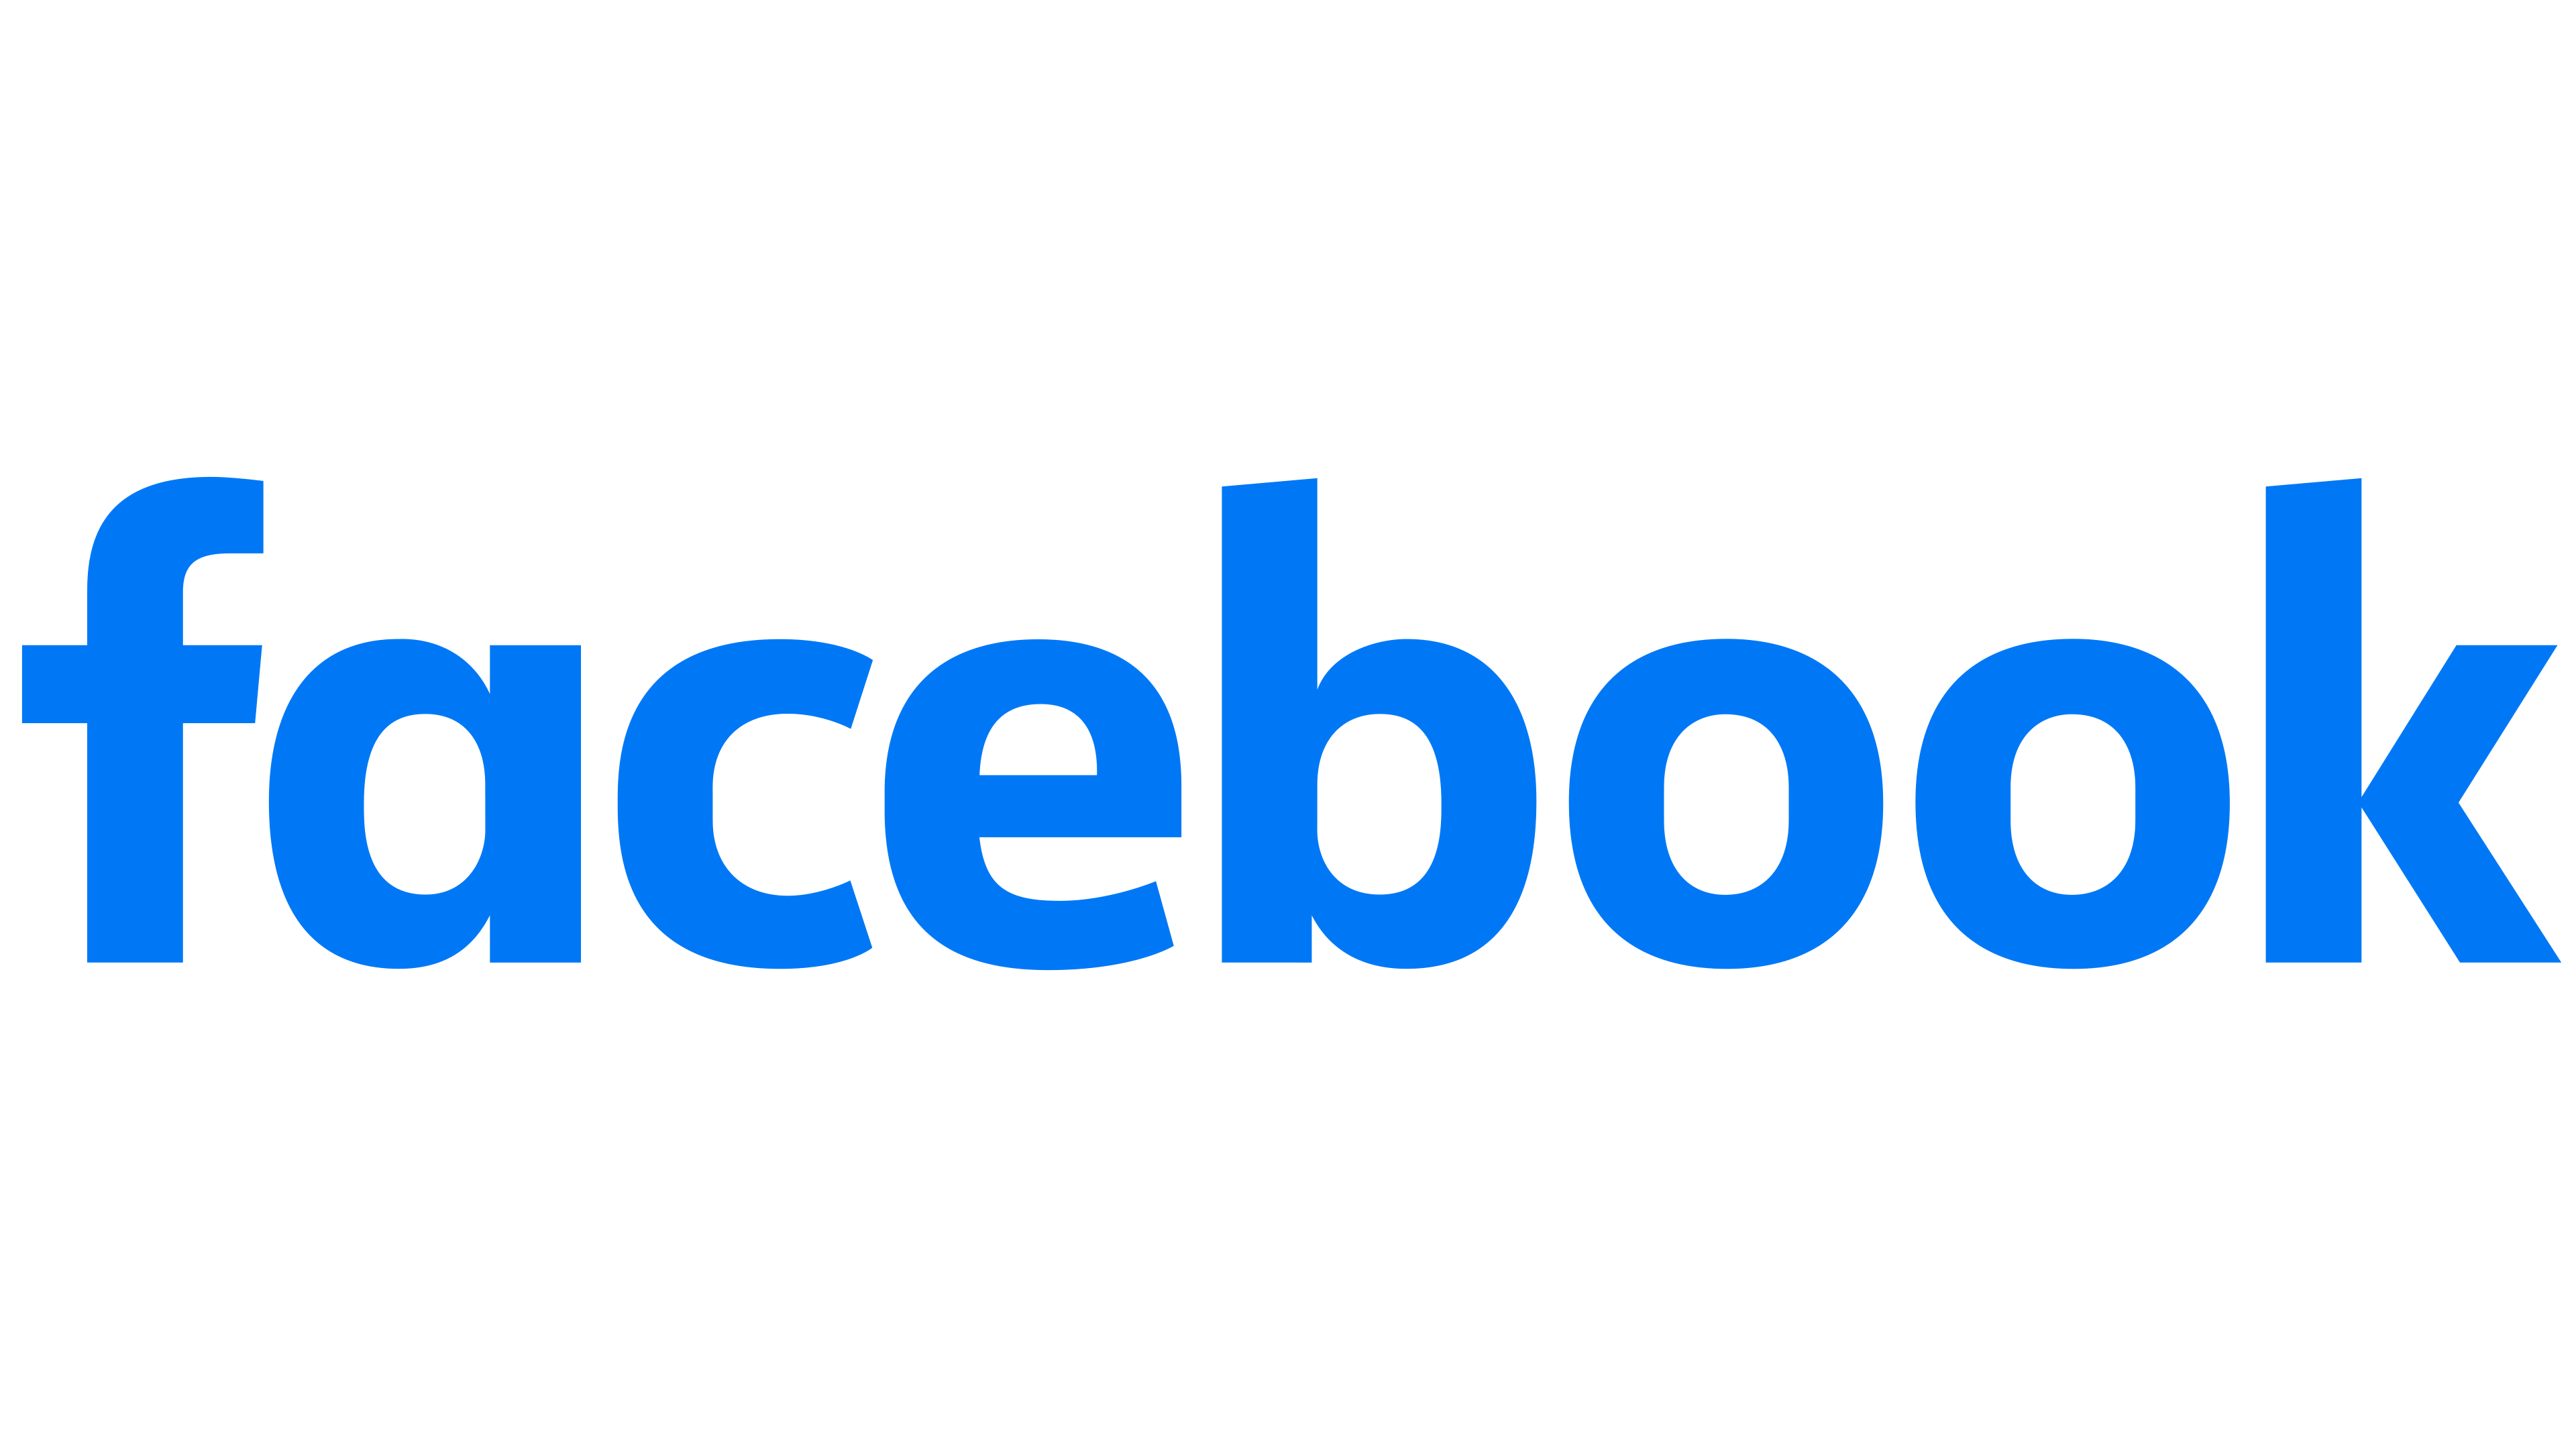 Facebook Logo The most famous brands and company logos in the world